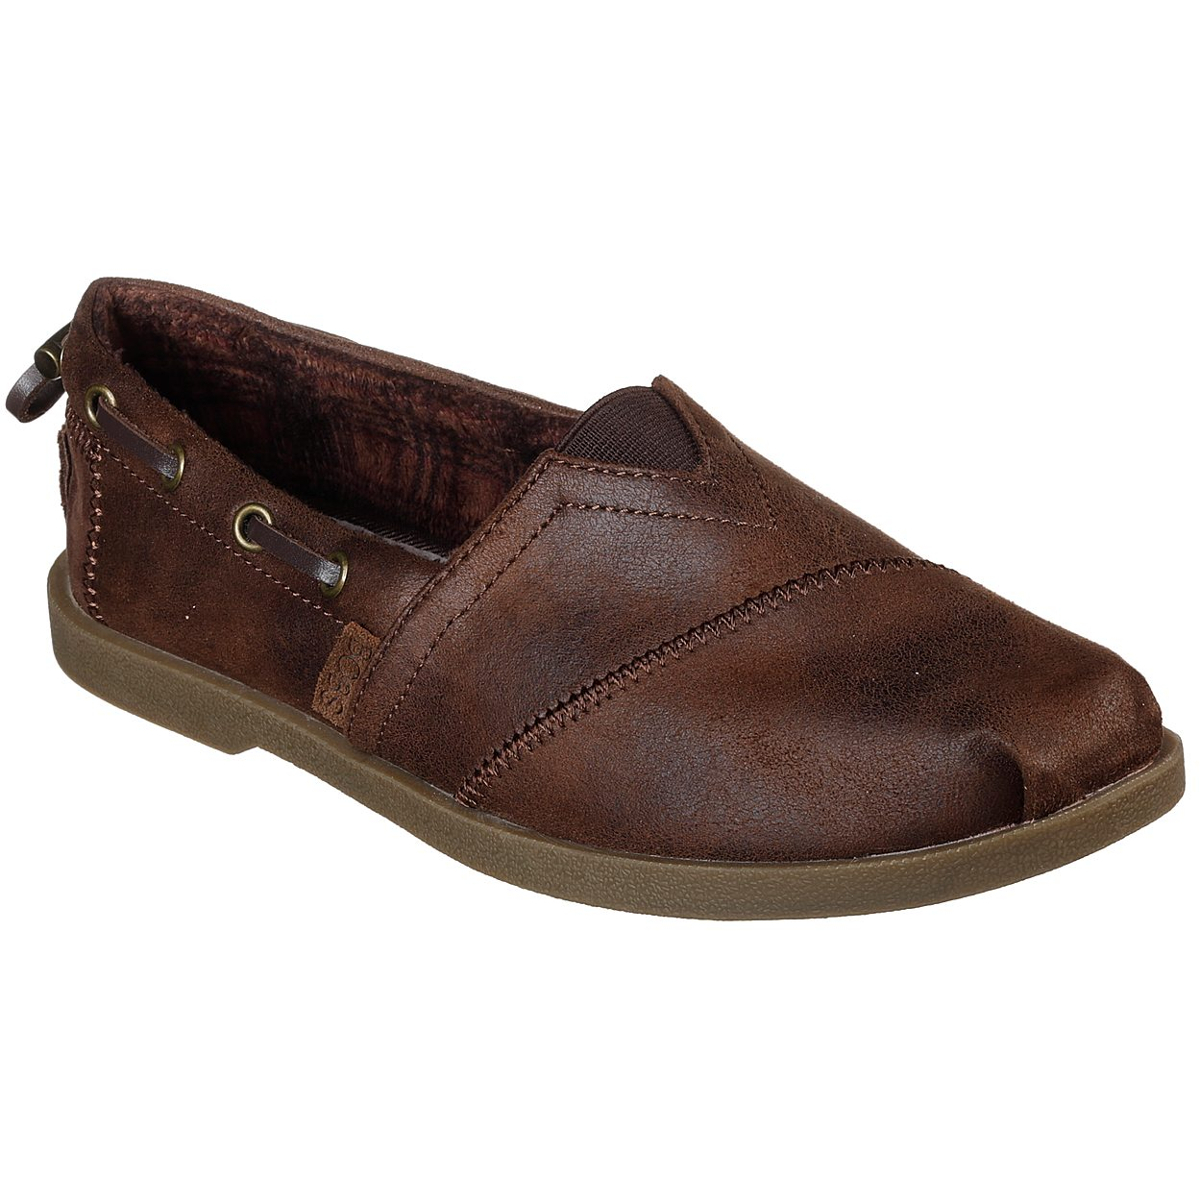 Skechers Women's Bobs Chill Luxe - Buttoned Up Casual Slip-On Shoes - Brown, 9